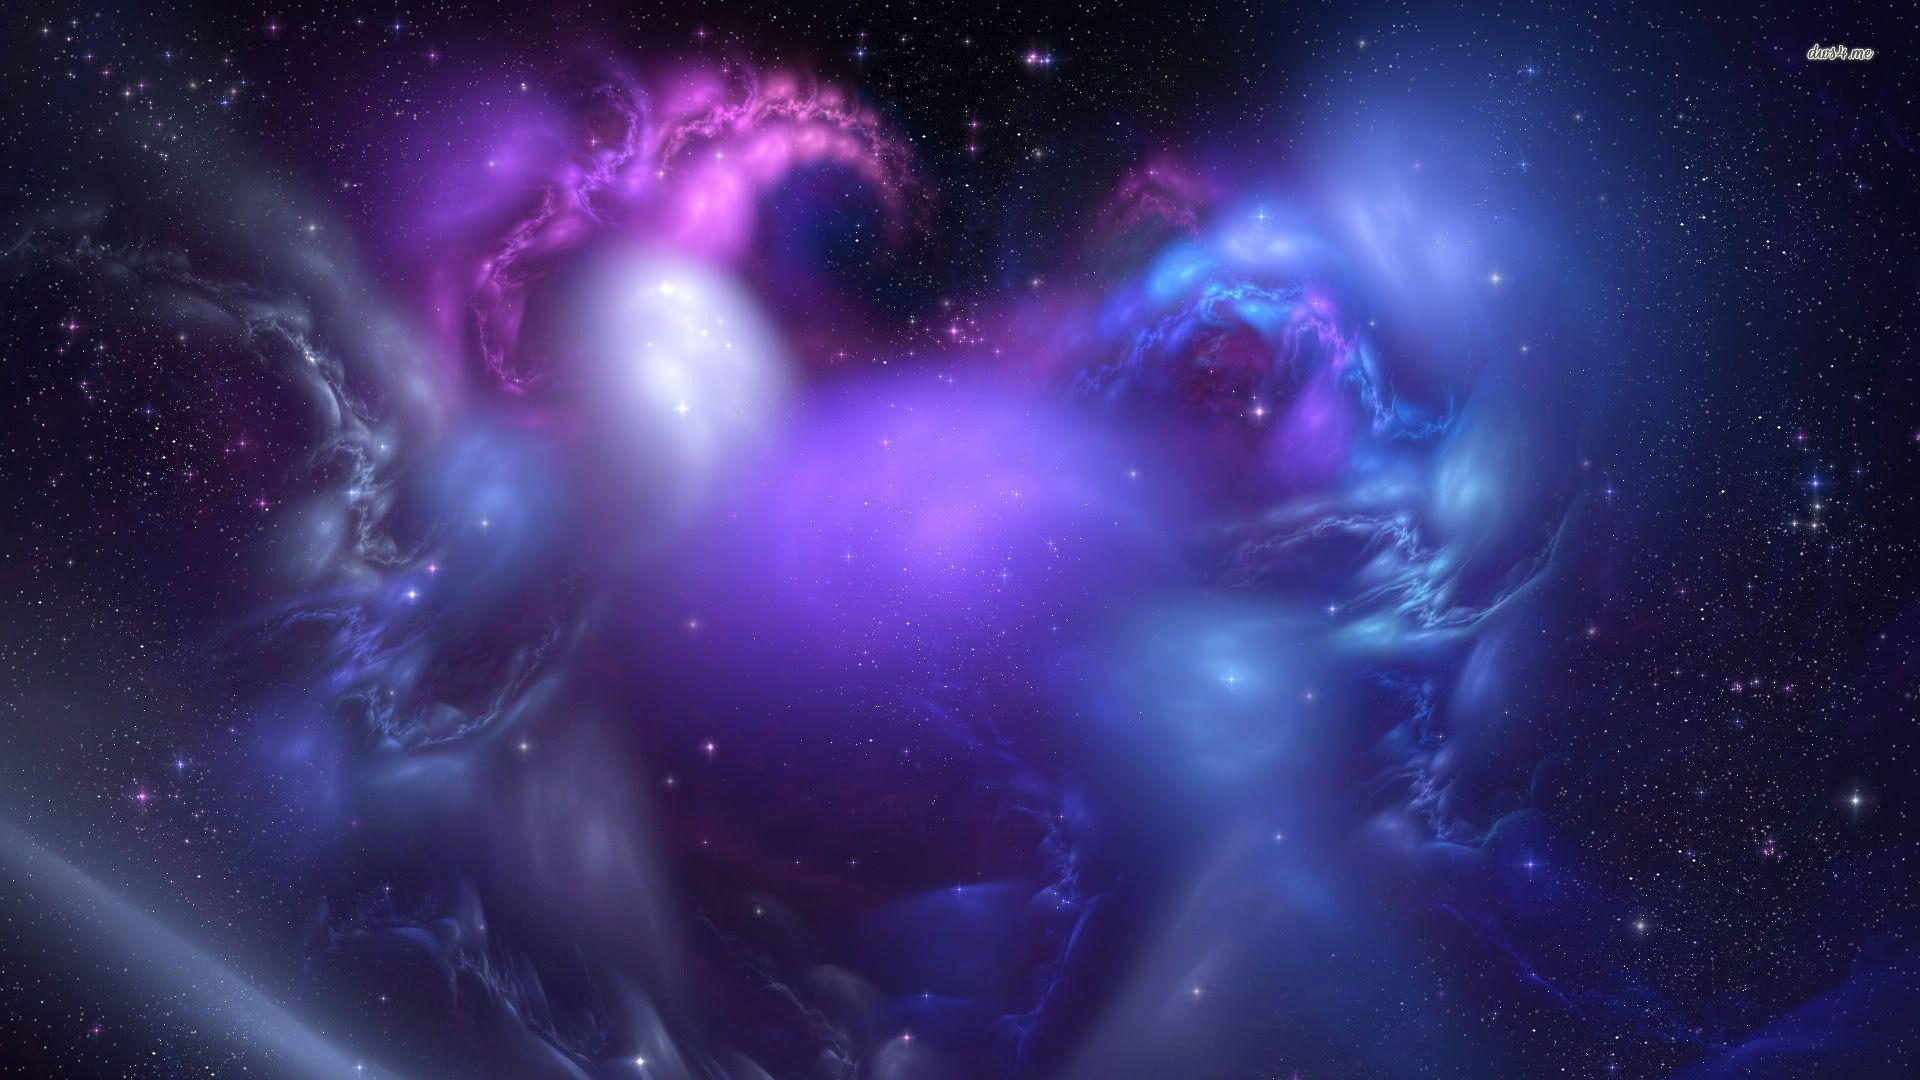 Wallpapers For > Blue And Purple Galaxy Wallpapers